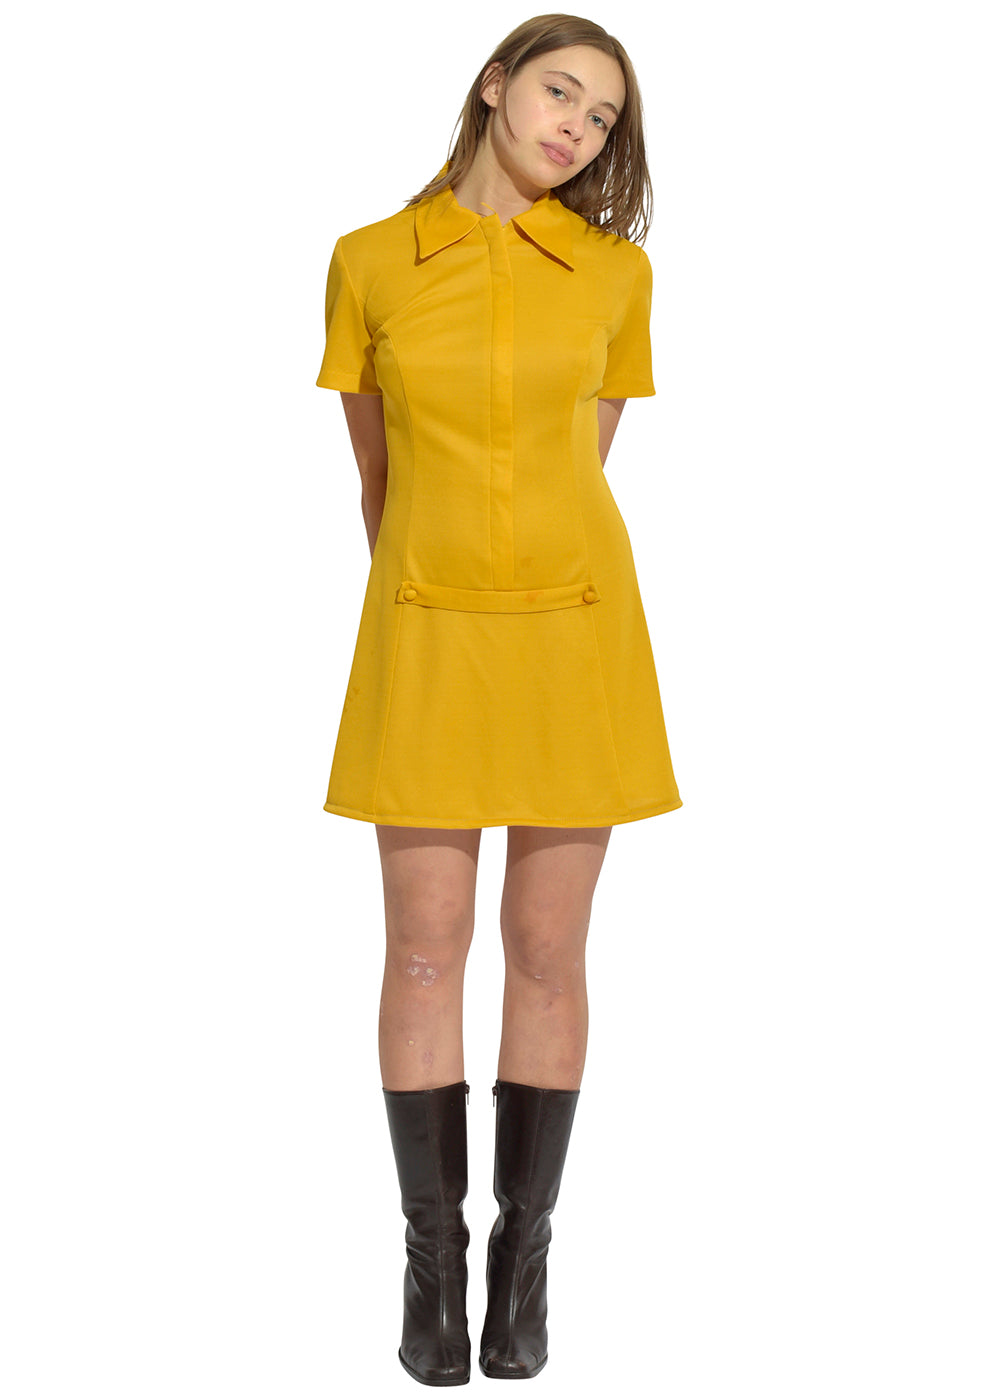 Marigold Collard Service Dress